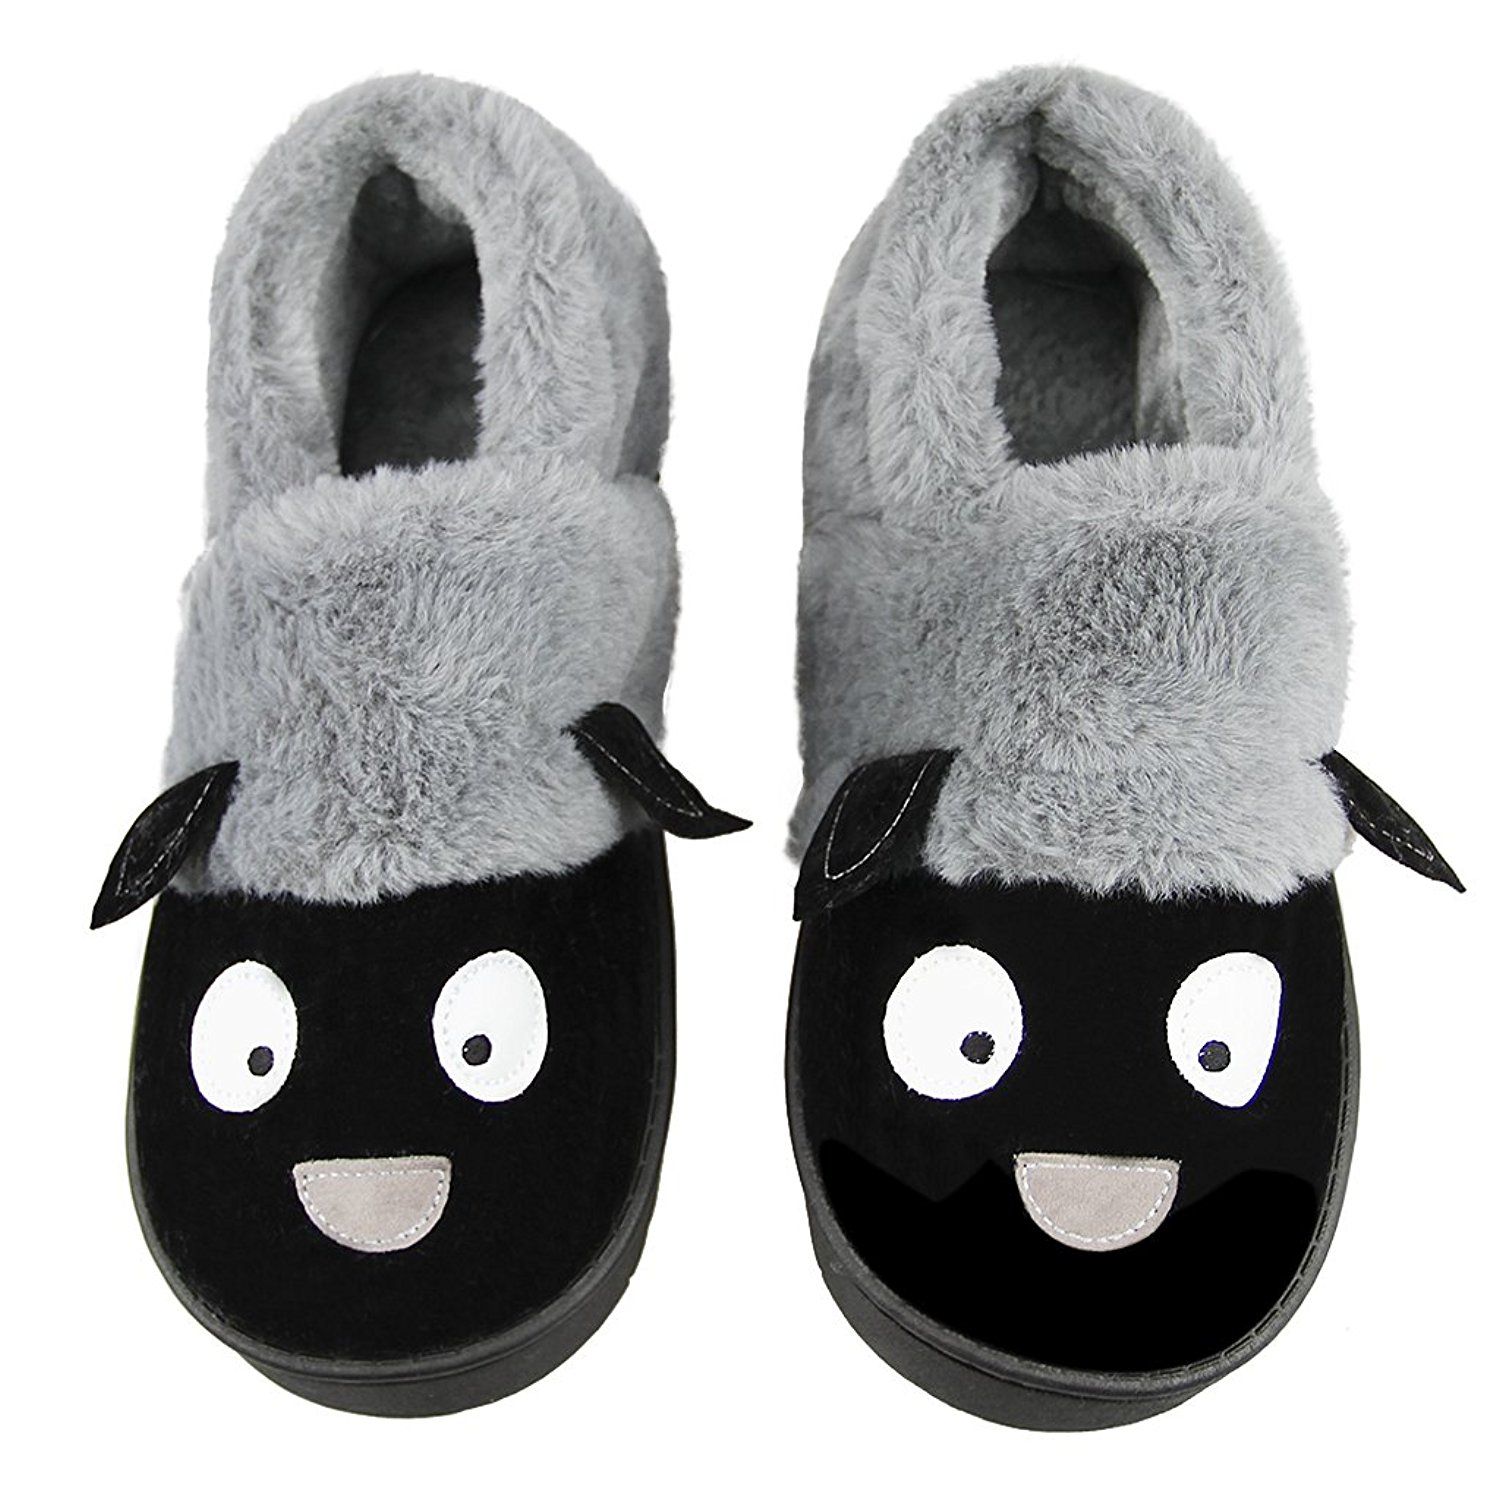 90b4180eadb2 Get Quotations · Unisex Winter Indoor Slip-on Slippers